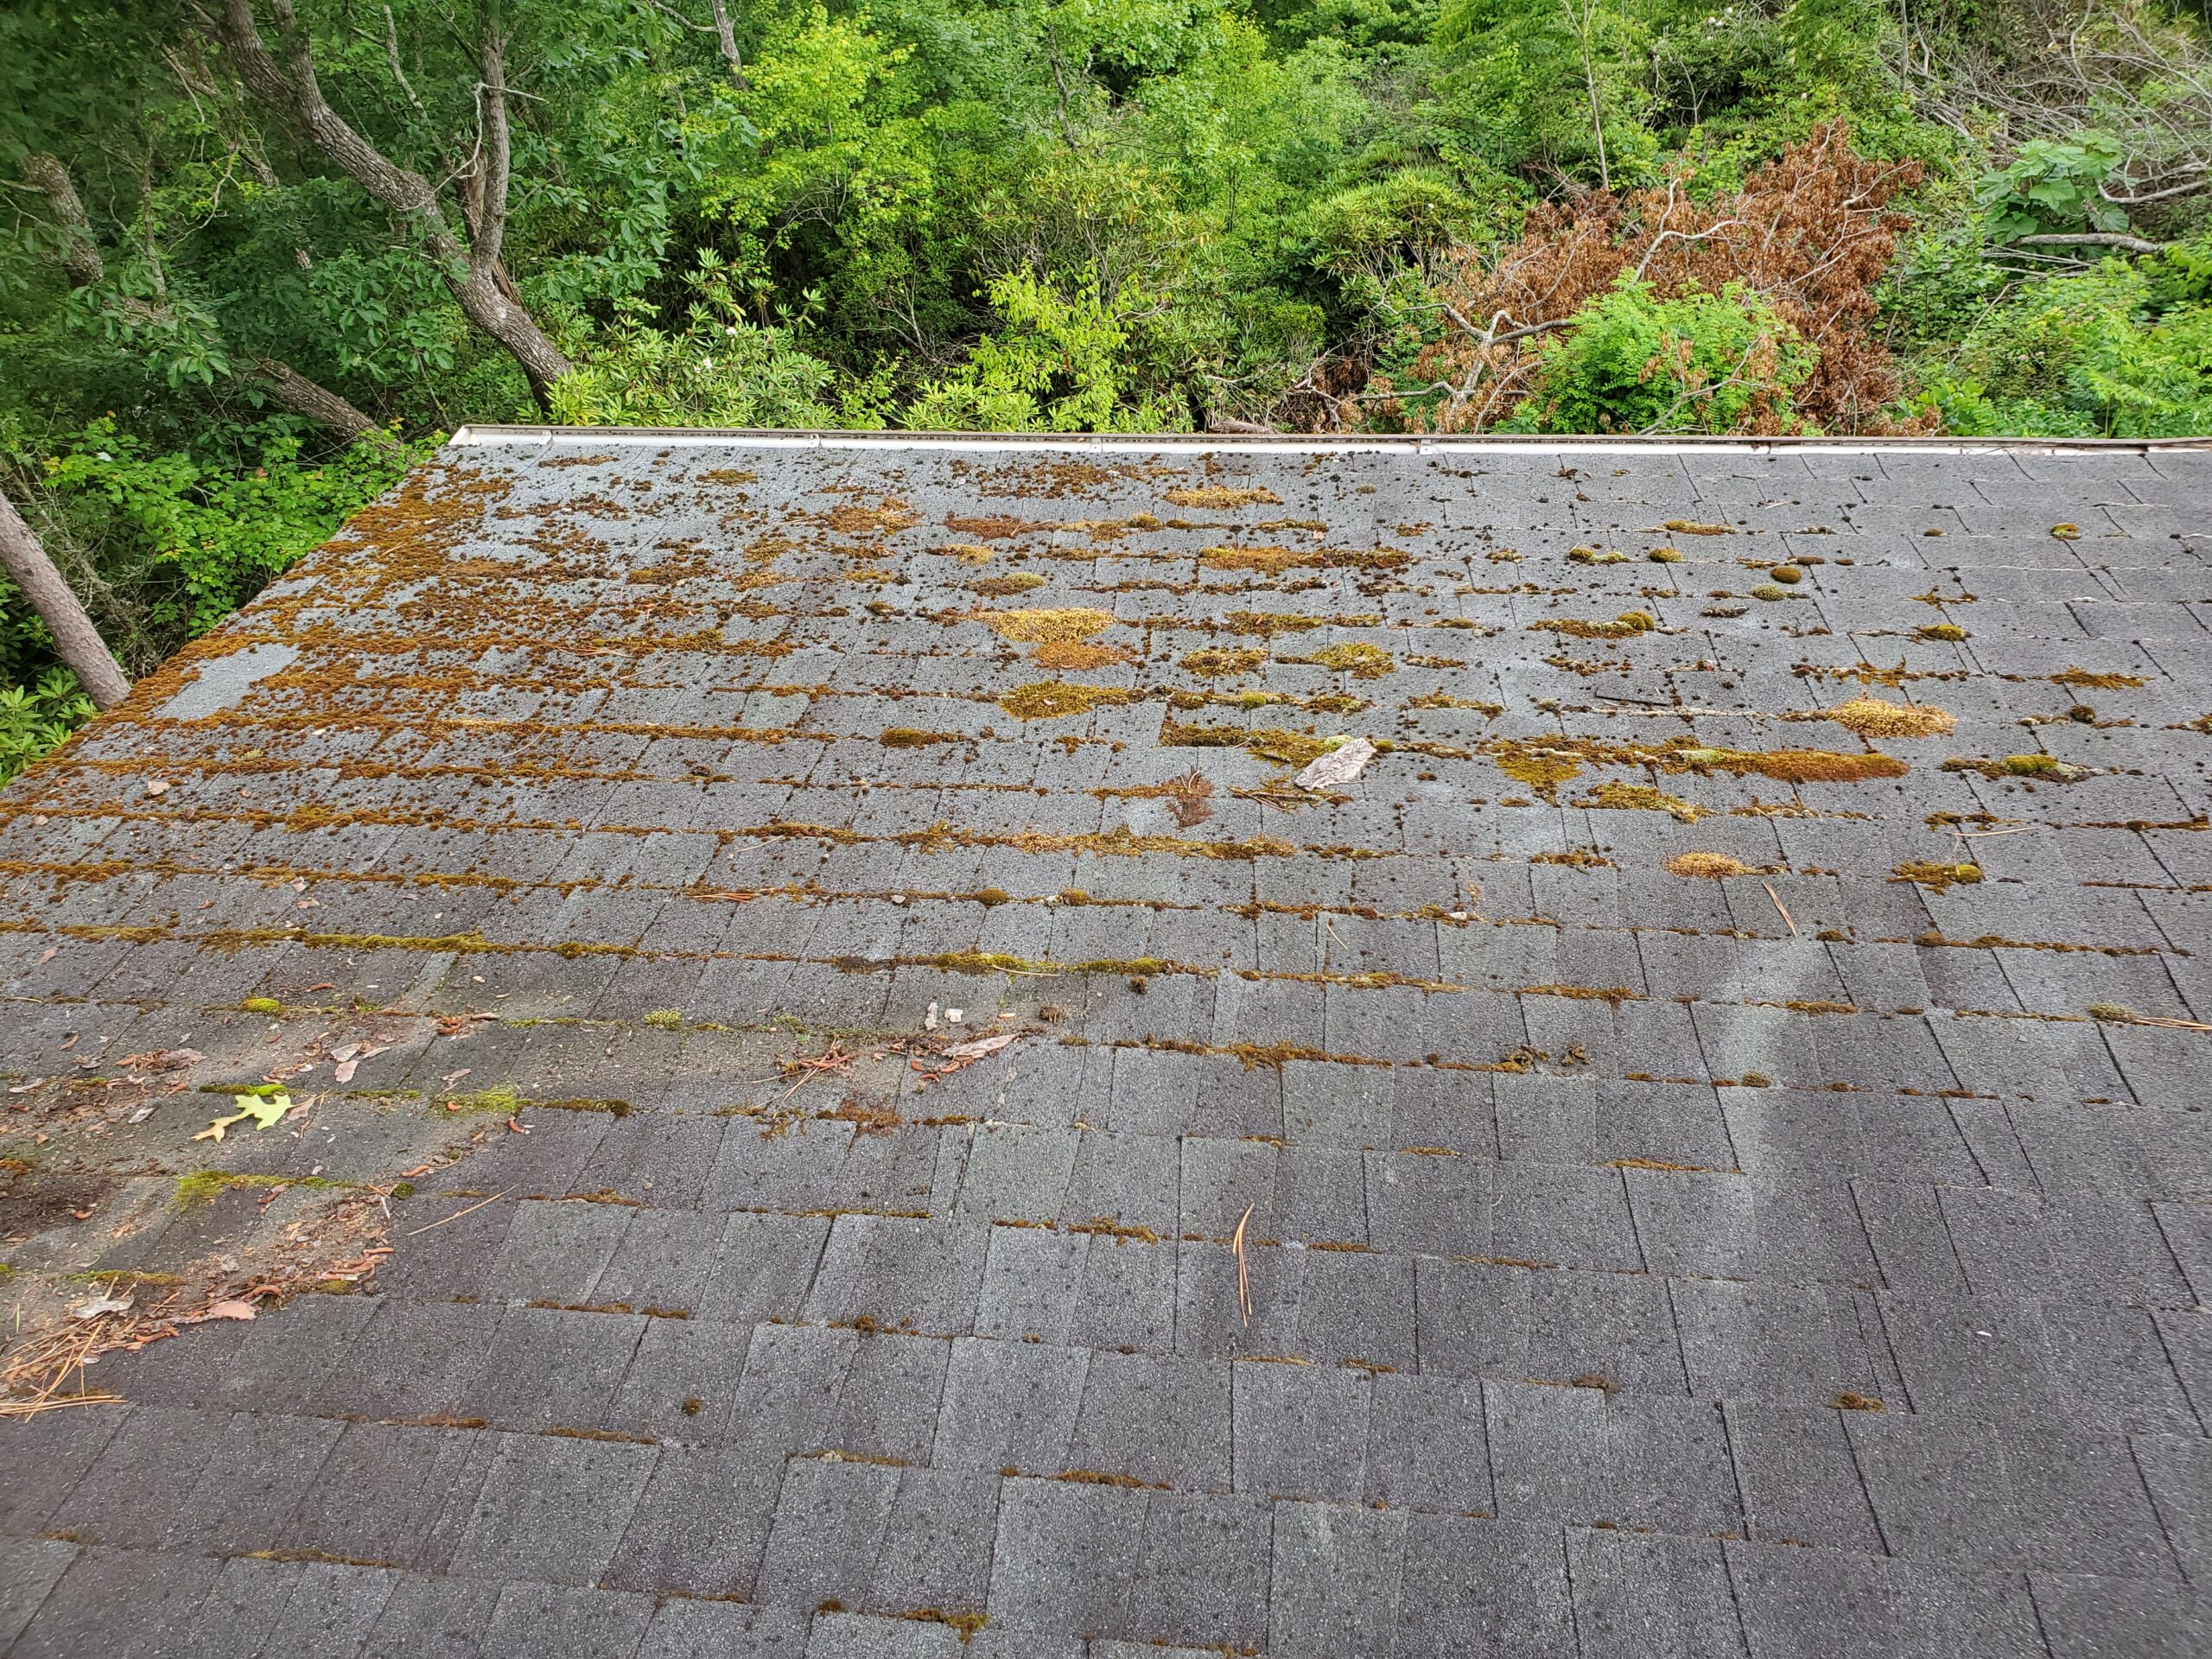 Moss growing on old shingle roof